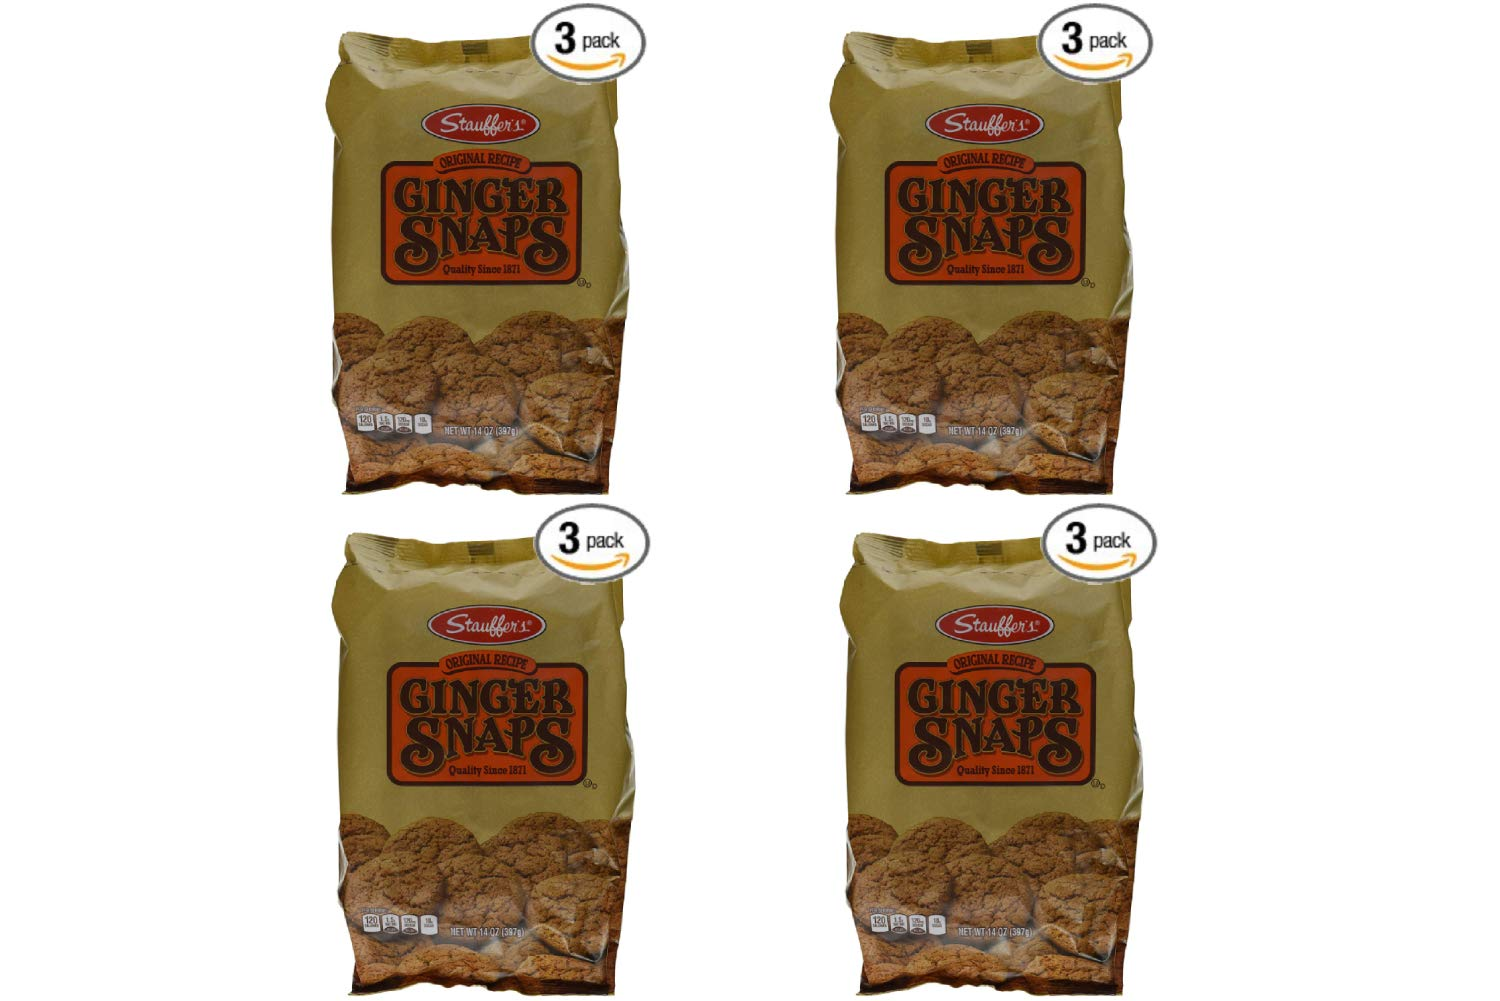 Stauffers Cookie Ginger Snap, Original, 14 Ounce (Pack of 3) (4 Pack)